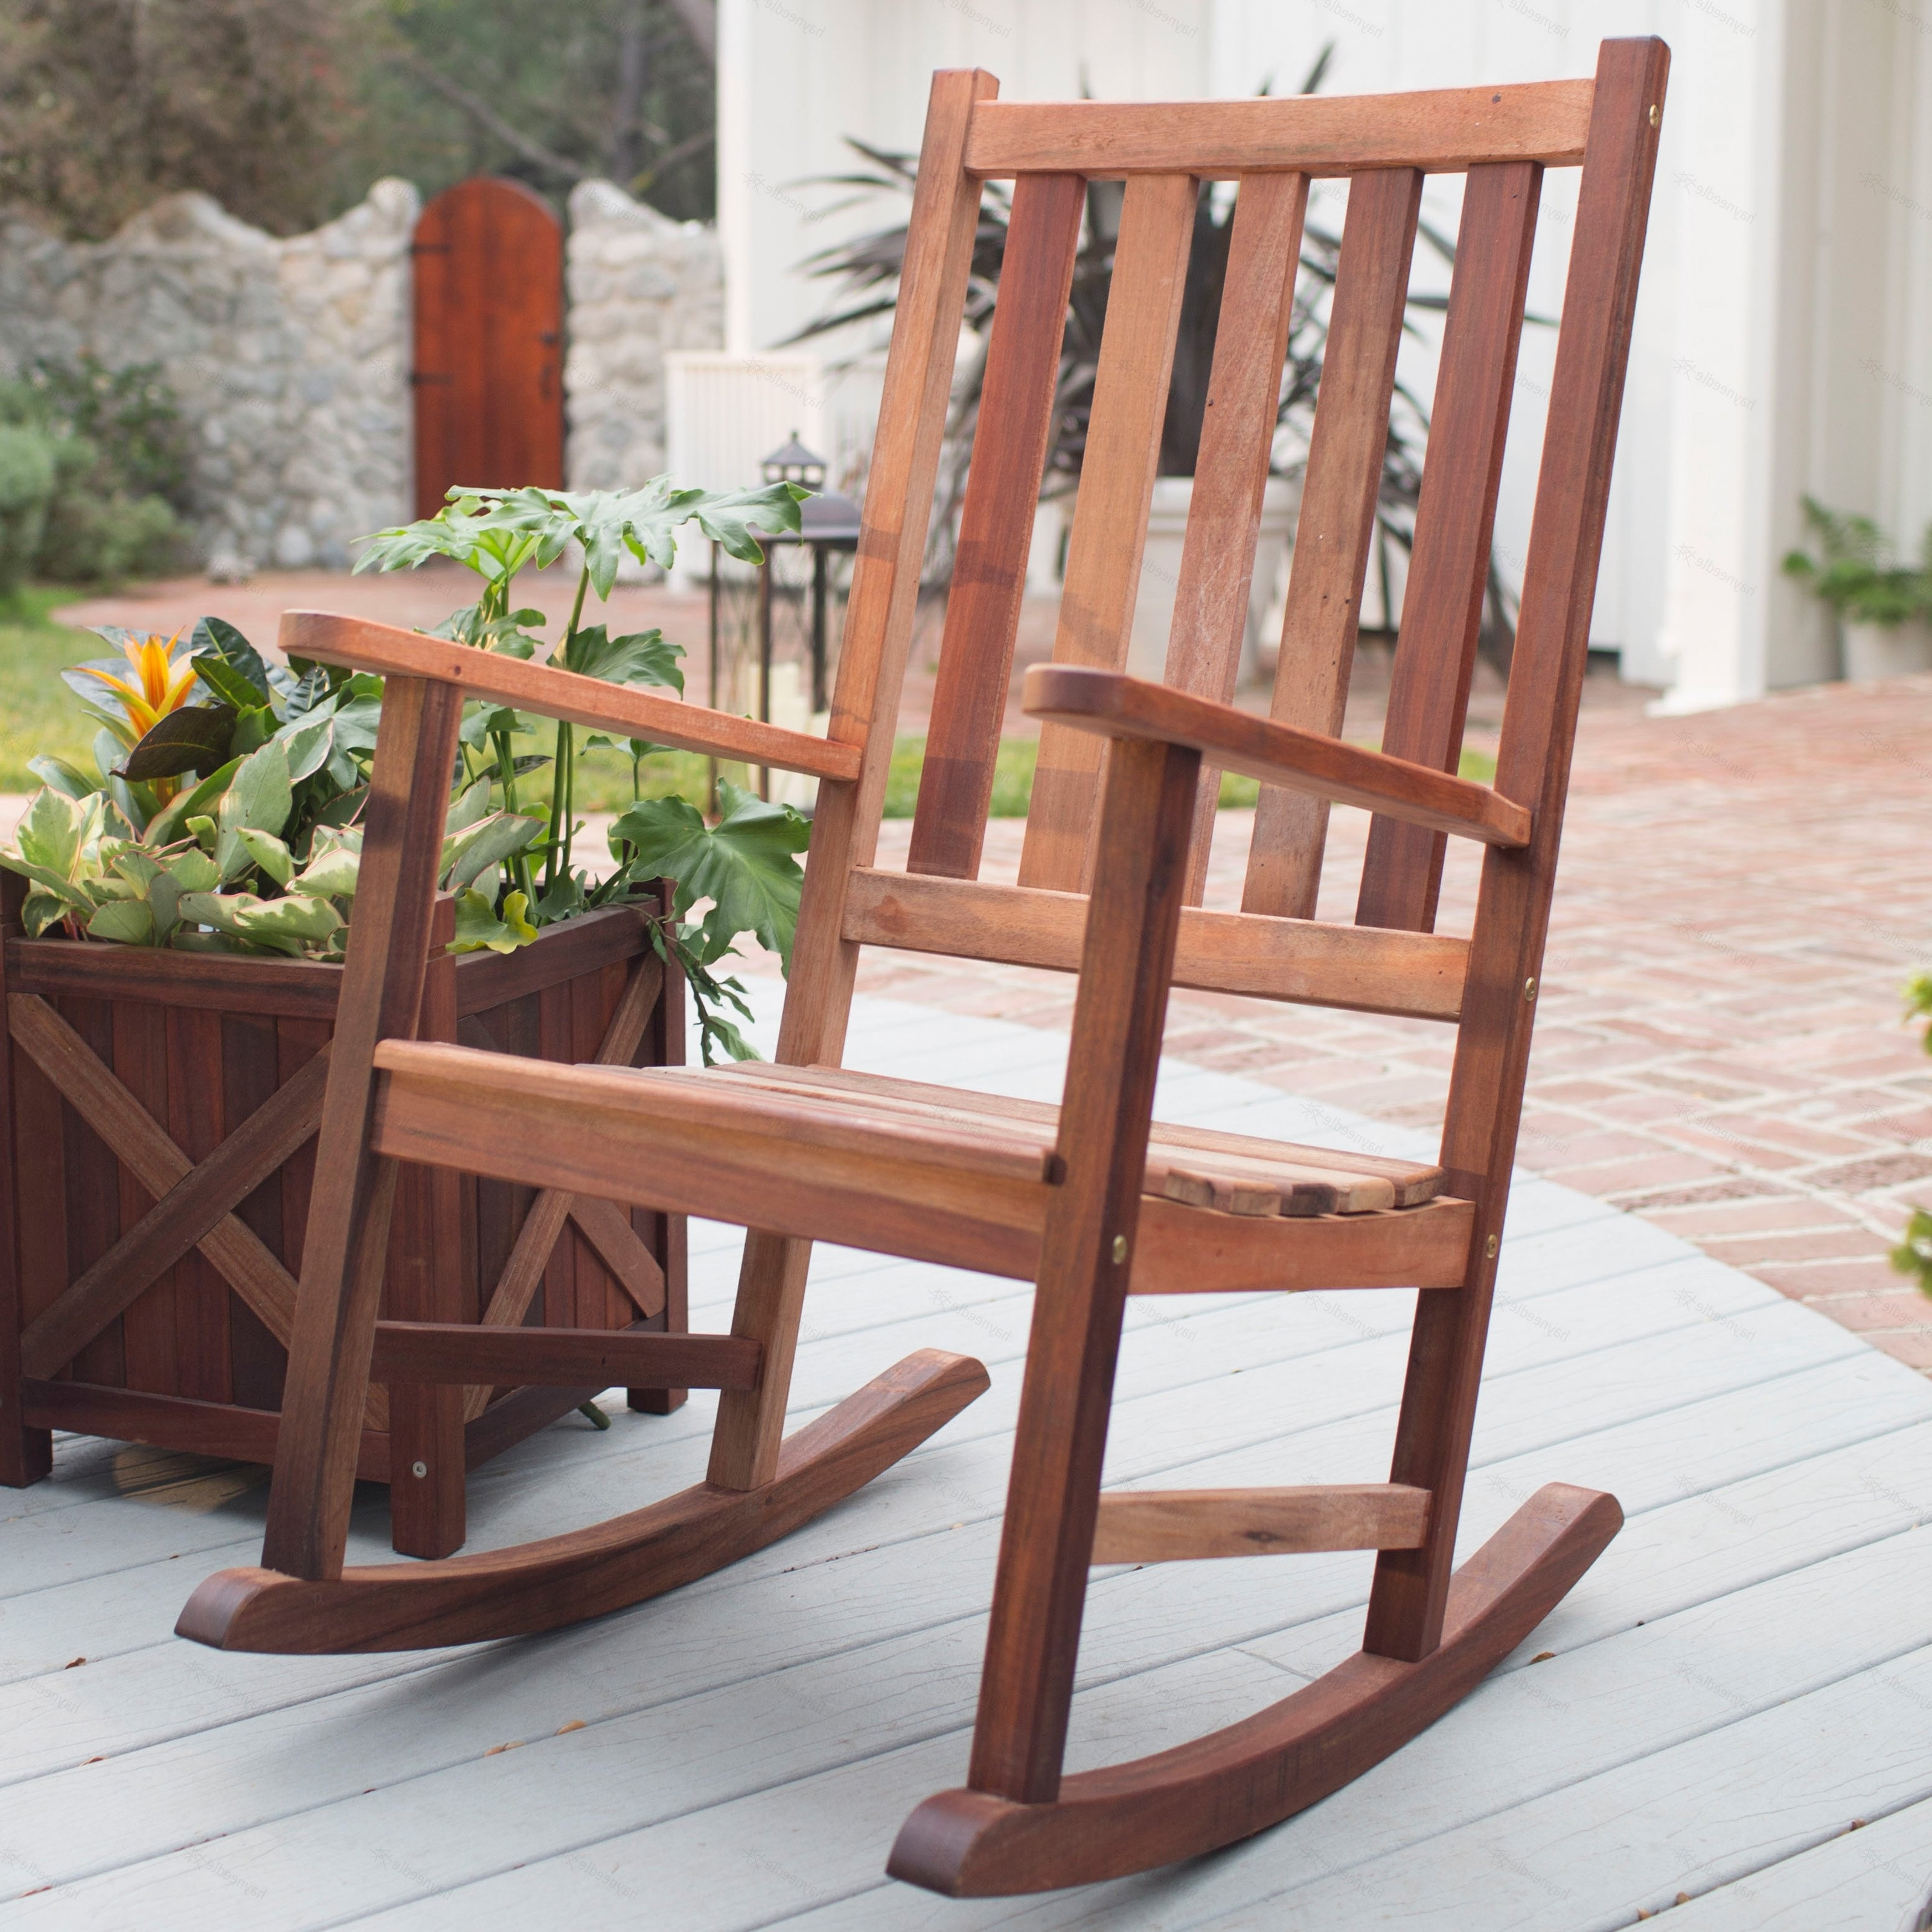 Wooden Patio Rocking Chairs With Well Known Decorating Black Outdoor Rocking Chairs Black Patio Rocking Chair (View 3 of 15)